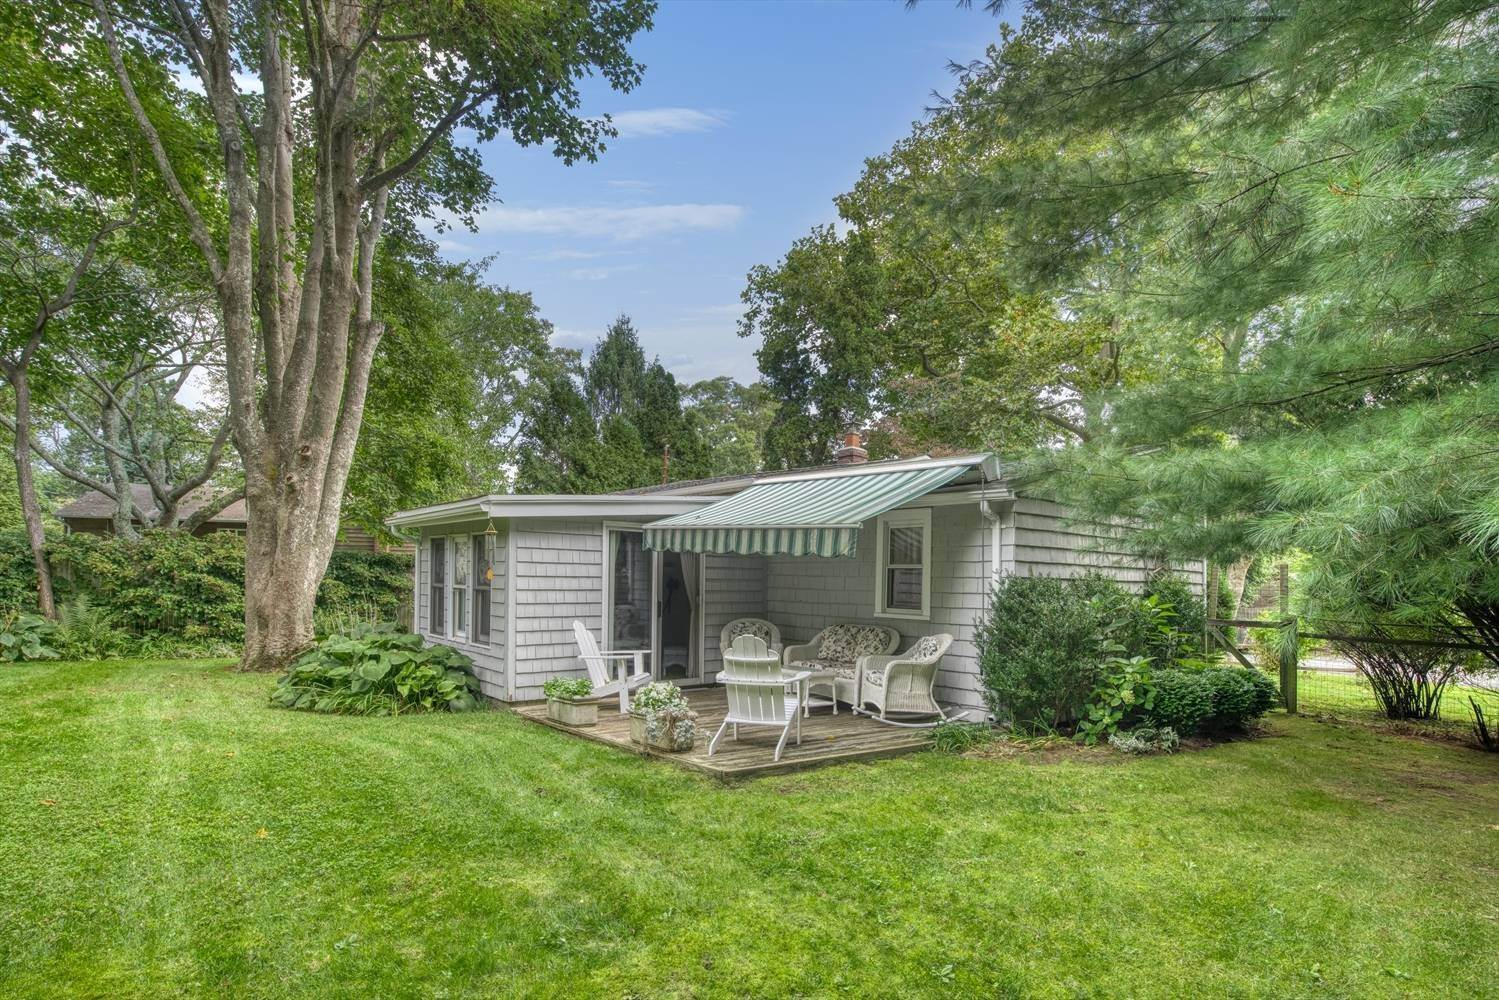 Single Family Home for Sale at Wouldn'T It Be Great To Own A Small Cottage At The Village Edge? 87 Miller Lane E, East Hampton, NY 11937